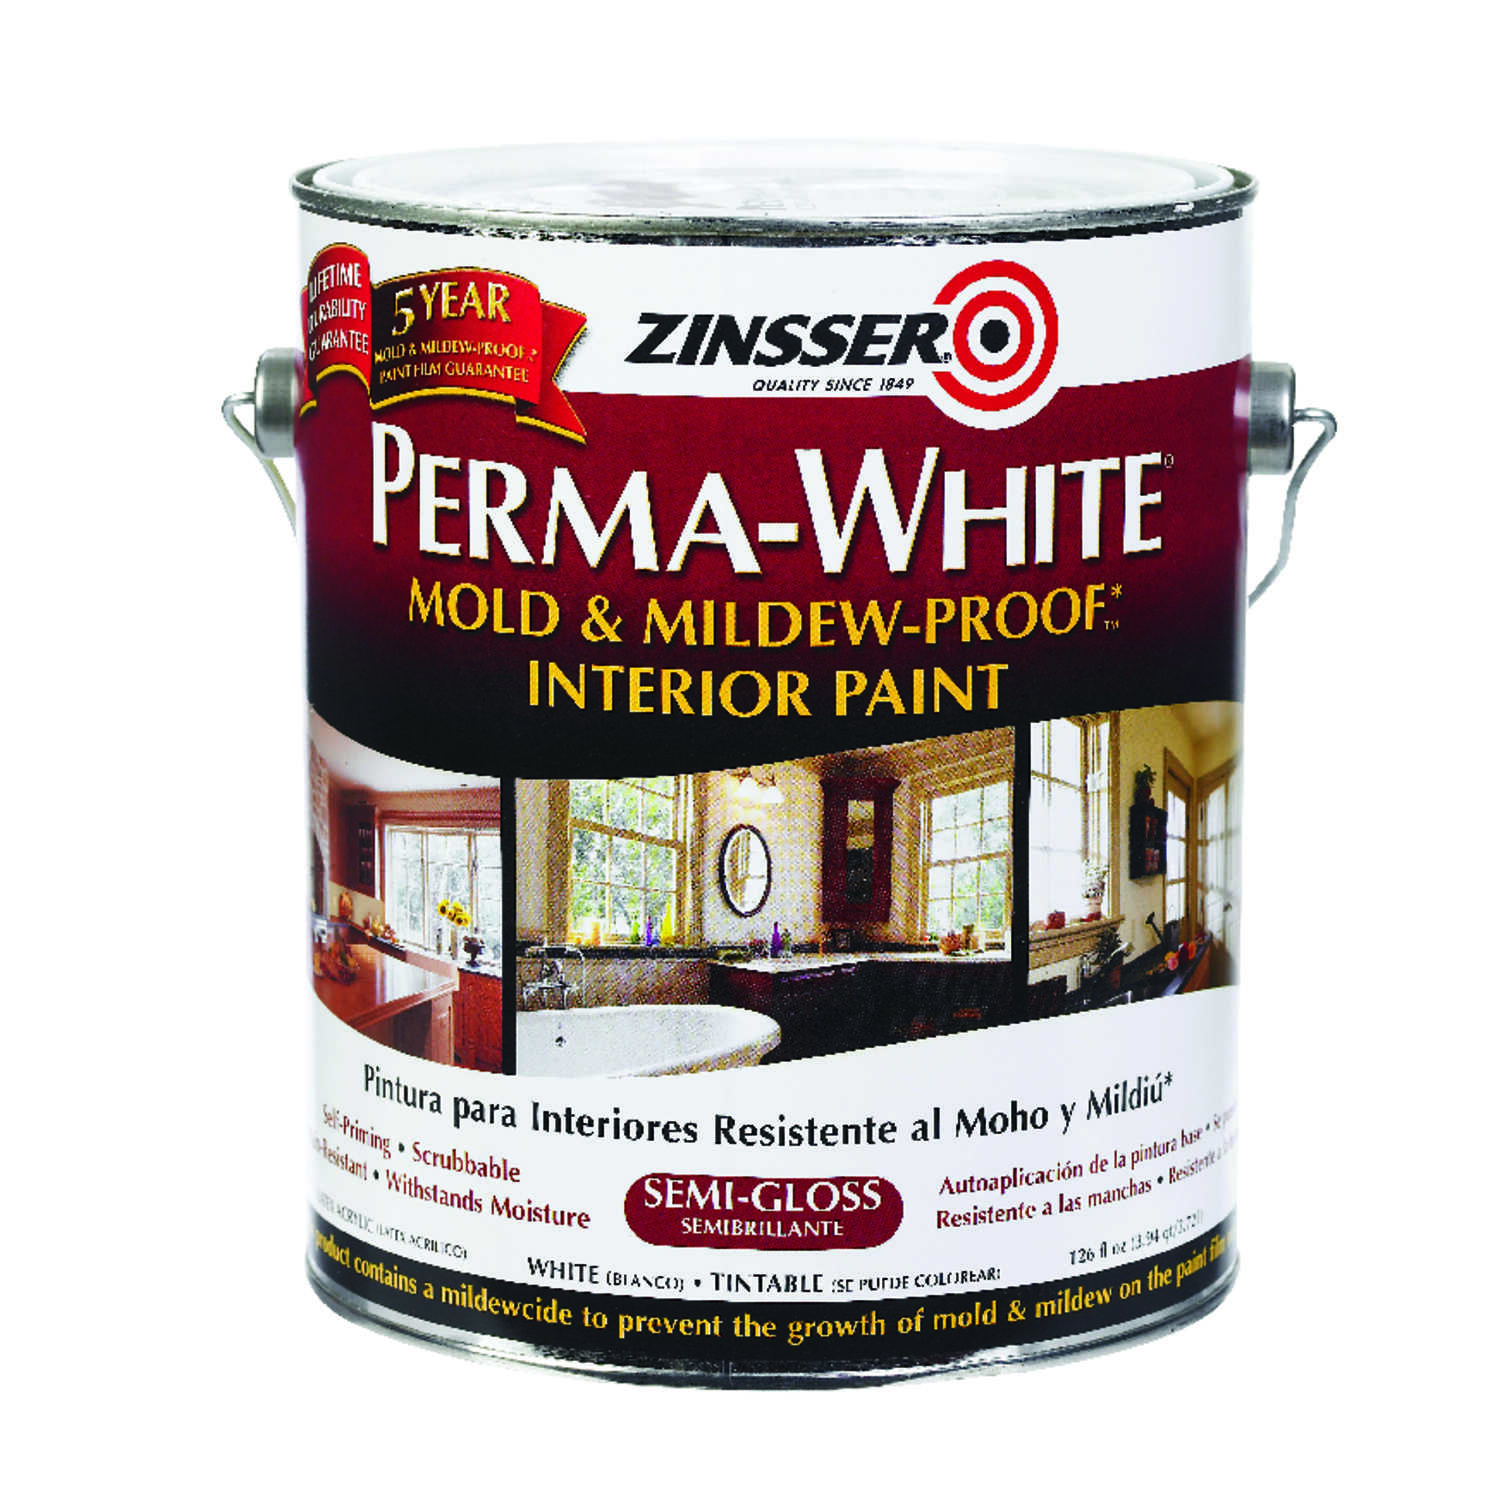 Zinsser Perma-White Semi-Gloss White Mold and Mildew-Proof